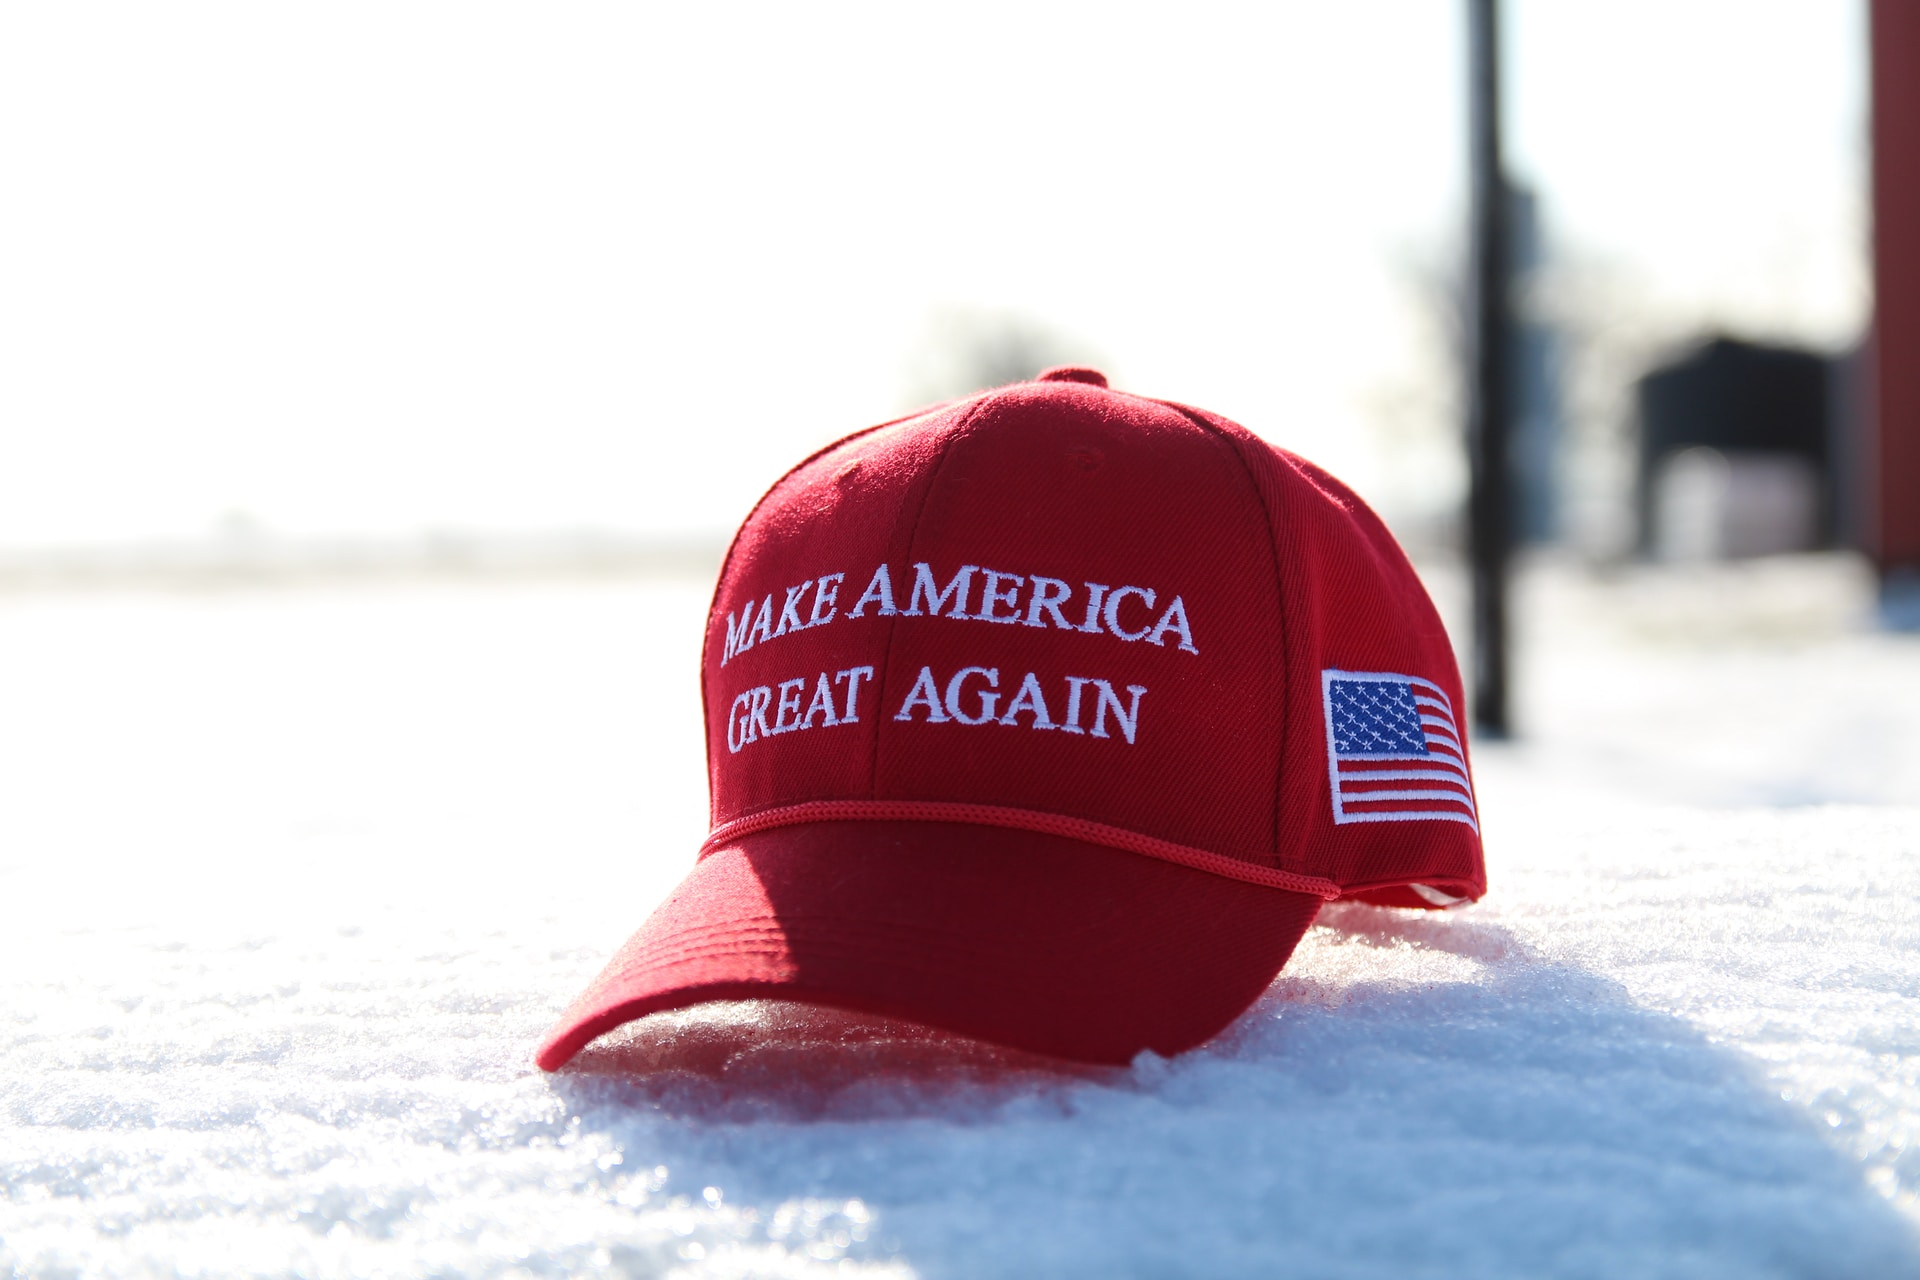 Beautiful hat! We're going to keep fighting to Make America Great Again!🇺🇸🇺🇸